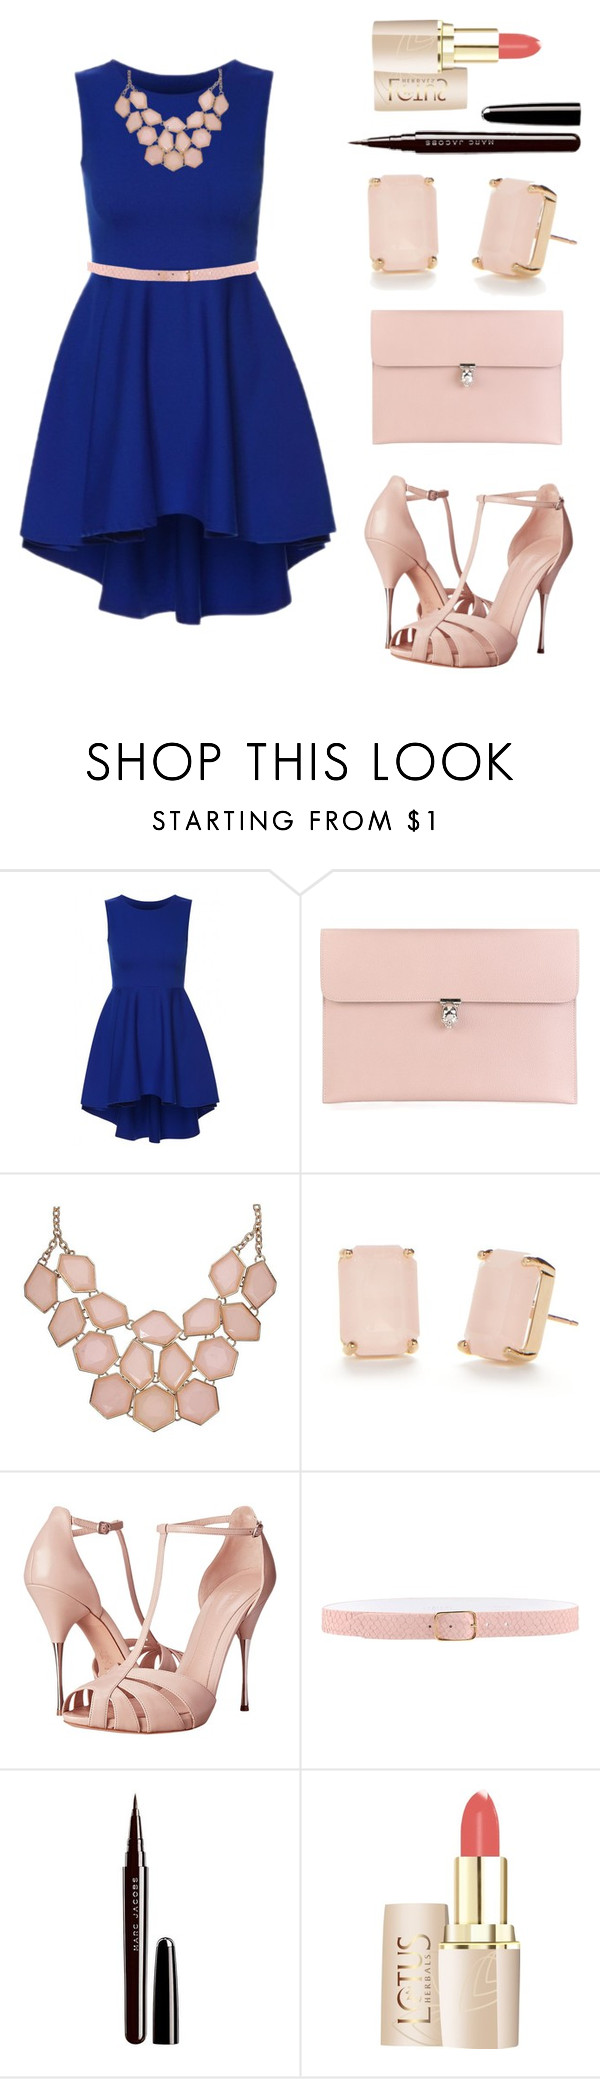 """""""Feminin Gal"""" by narniandreamer ❤ liked on Polyvore featuring Alexander McQueen, Kate Spade, Orciani and Marc Jacobs"""